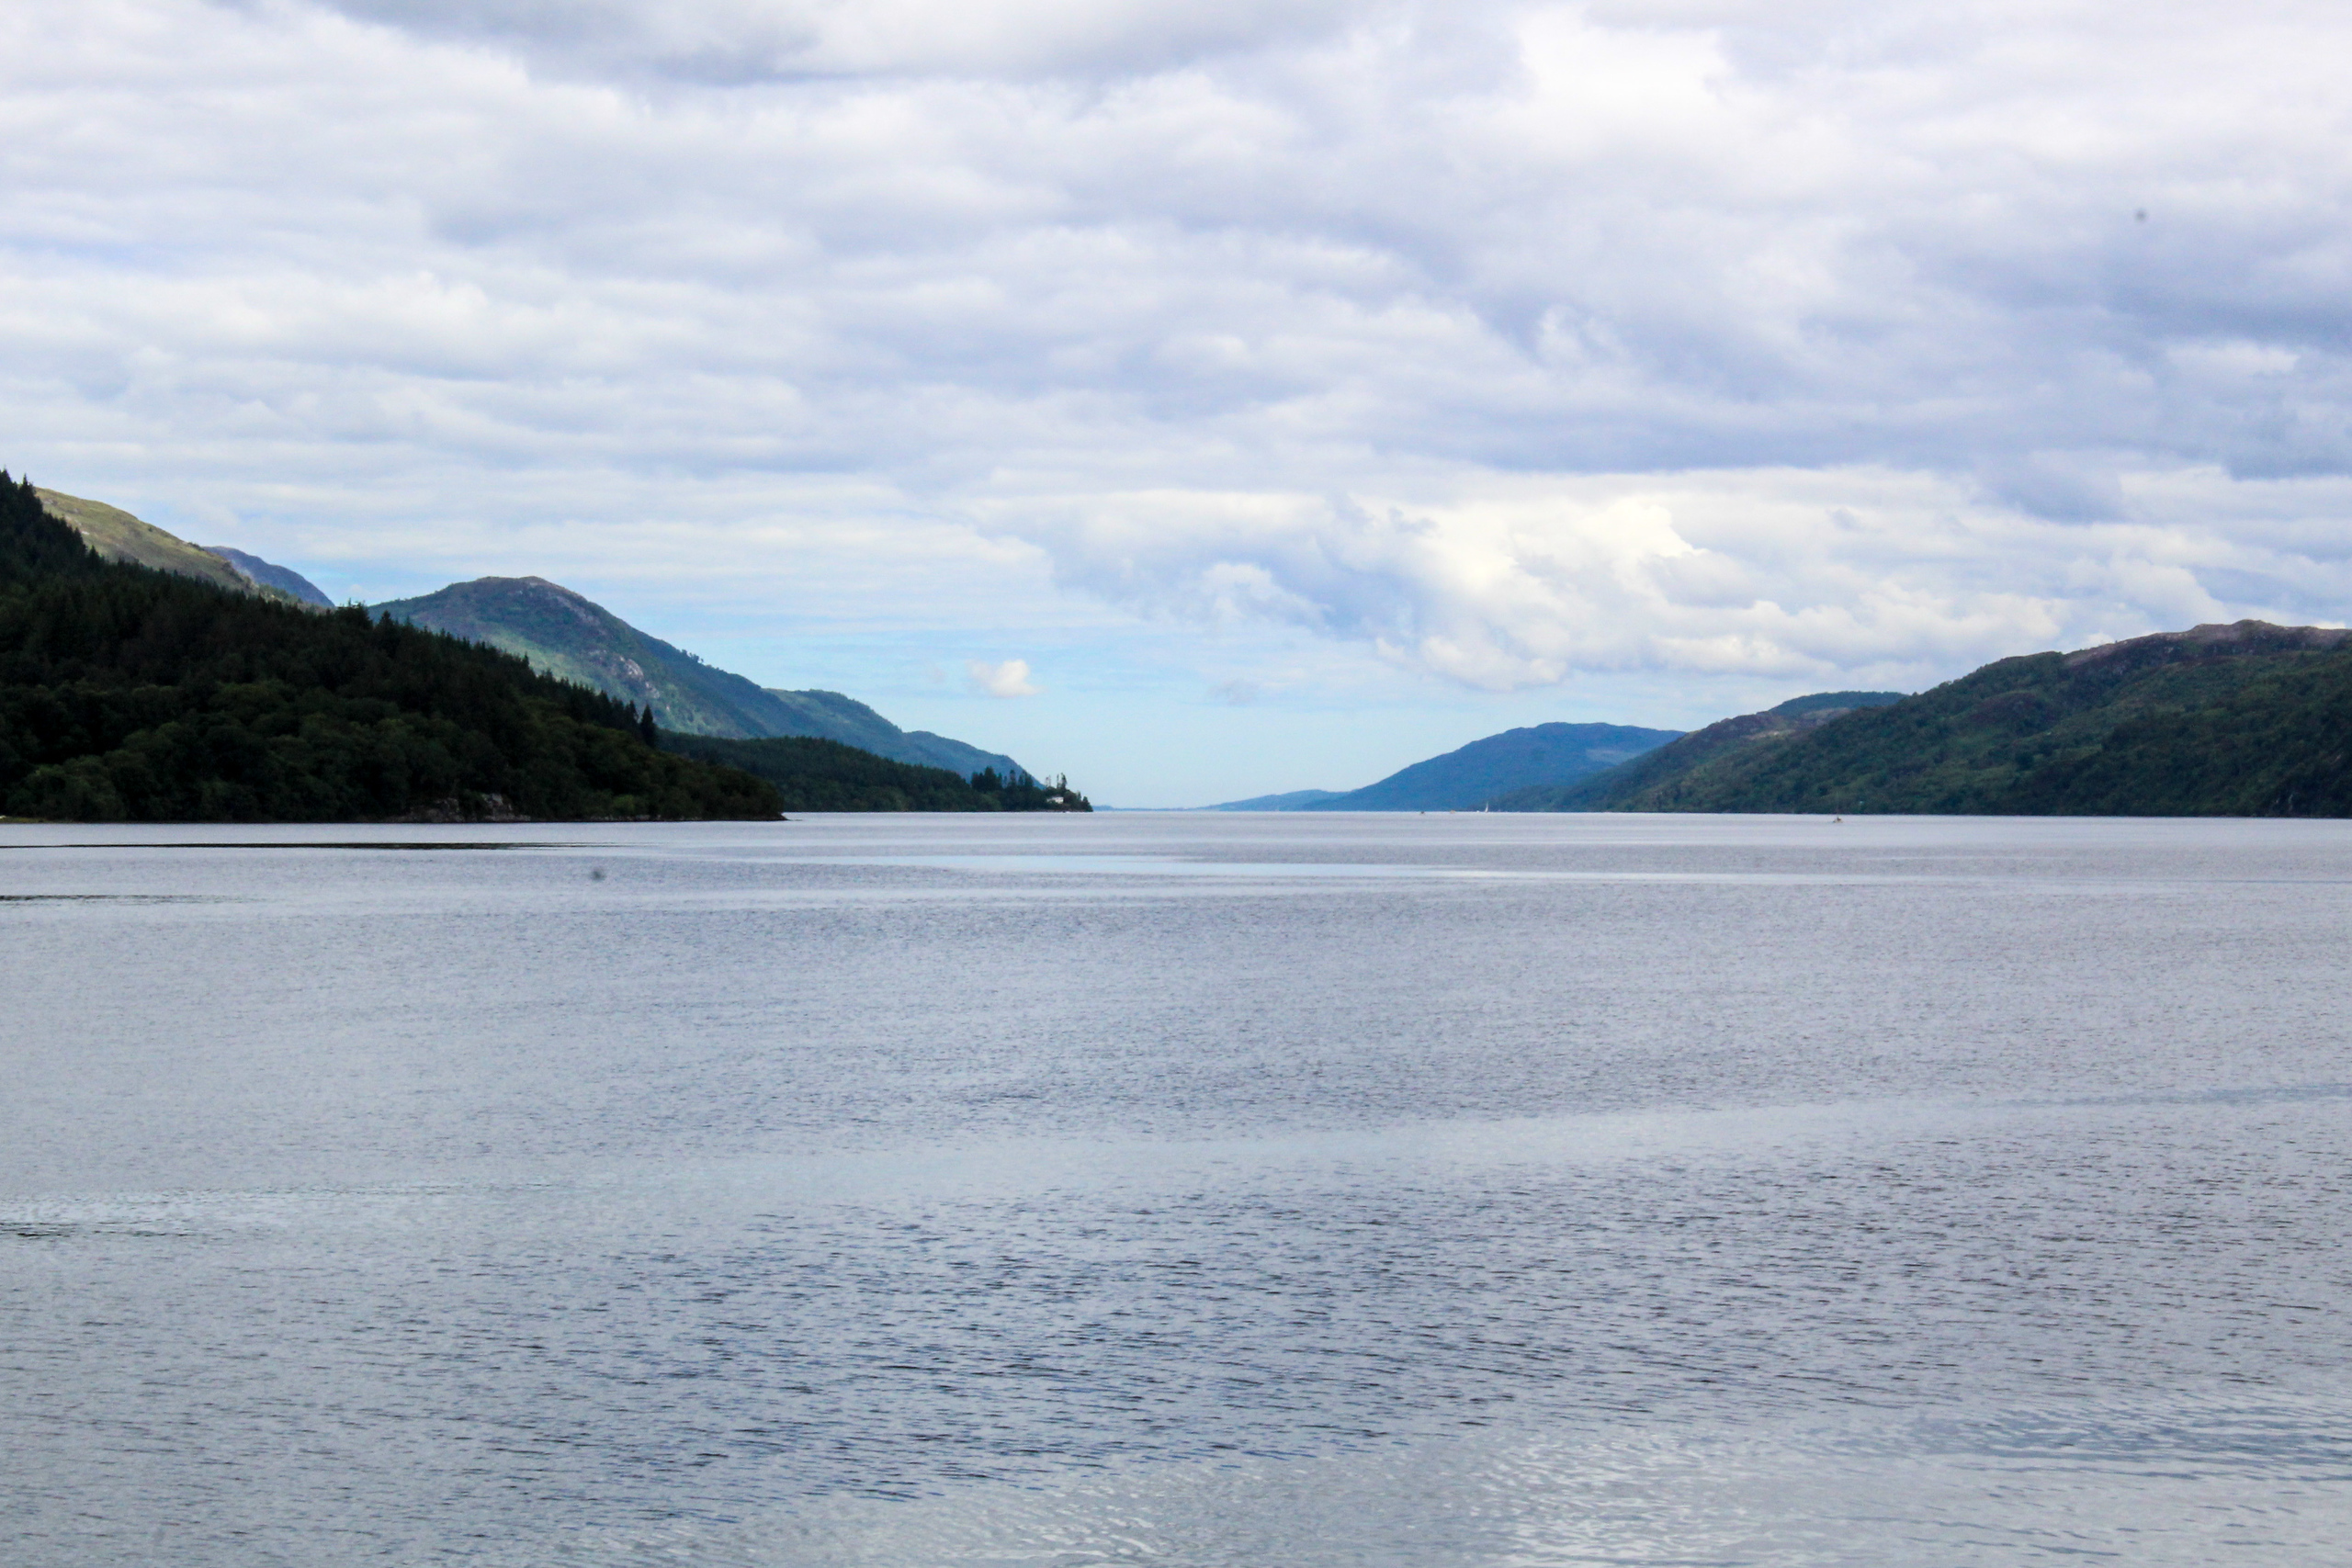 itinerary writing, to say the lochs of scotland, comes with practice